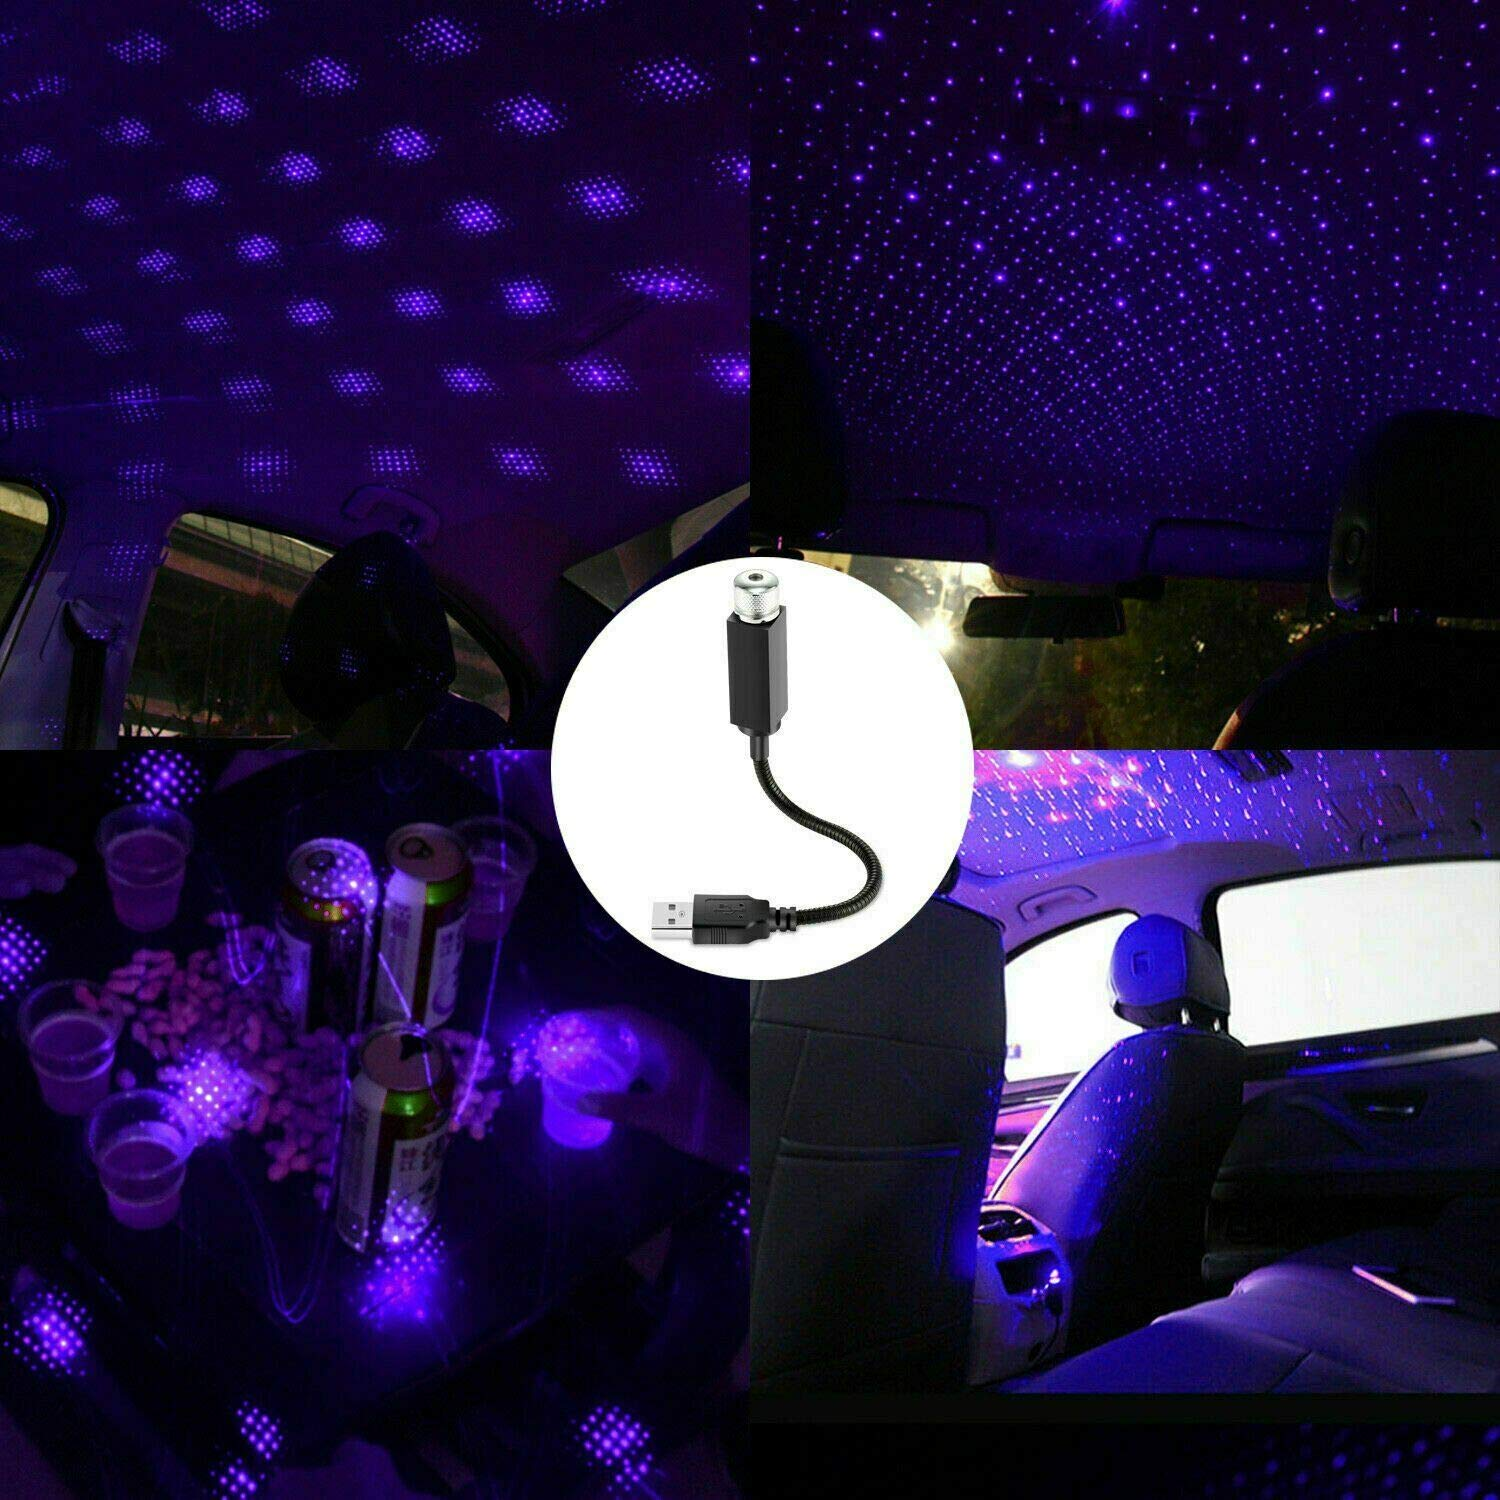 360 degree Rotation 6 Modes Purple Car Room Roof LED USB Star Night Lights Romantic Club Atmosphere Sky Star Projector Lamp Decoration for Bedroom Party Christmas Gift for Friend Children